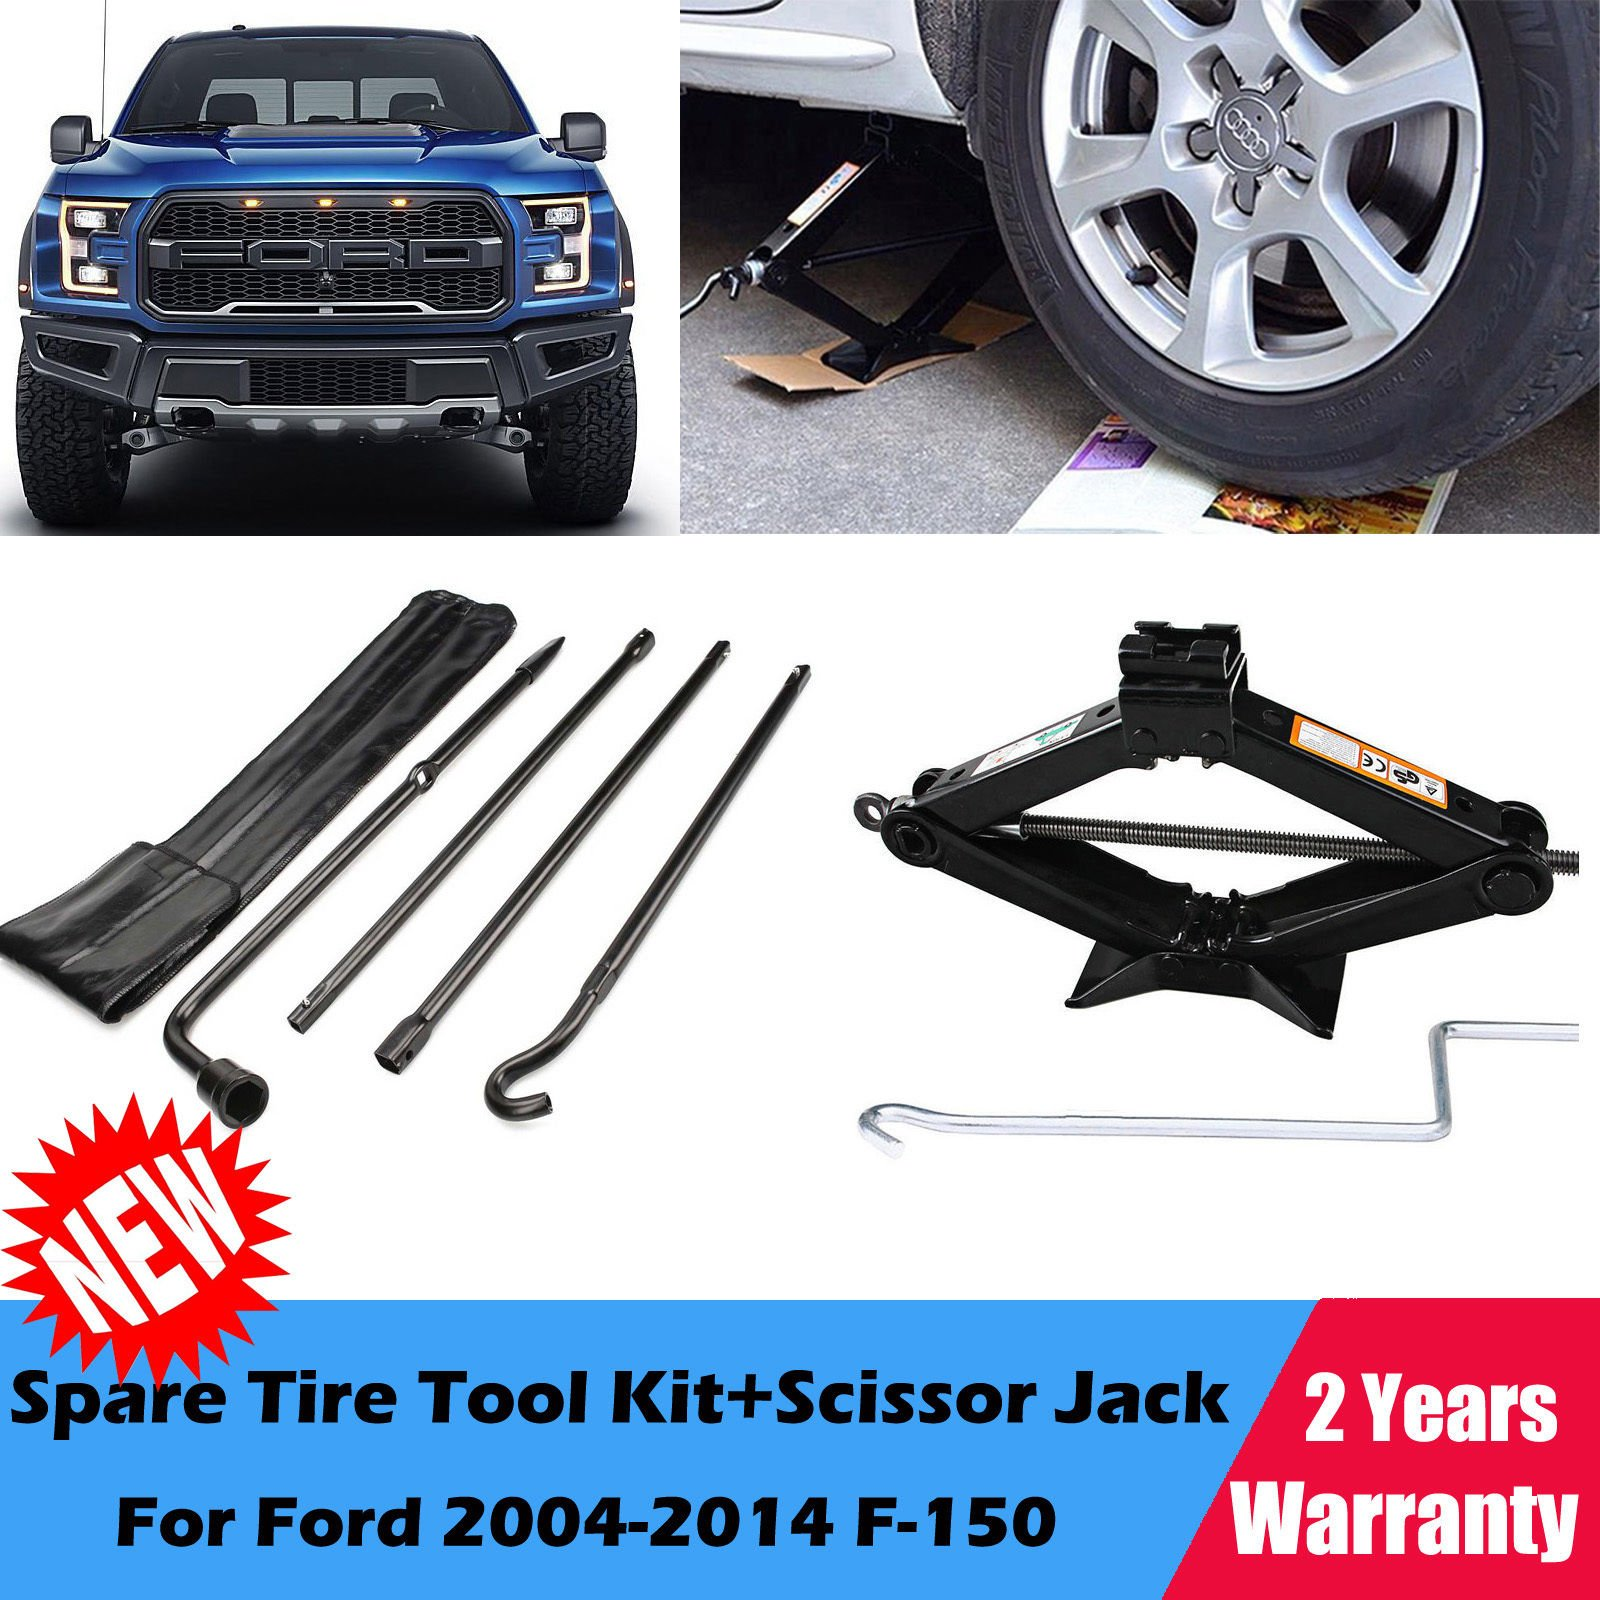 For 2004-2014 Ford F-150 Spare Tire Tool Kit and 2 Ton Scissor Jack , 2 Year Warranty , US Stock